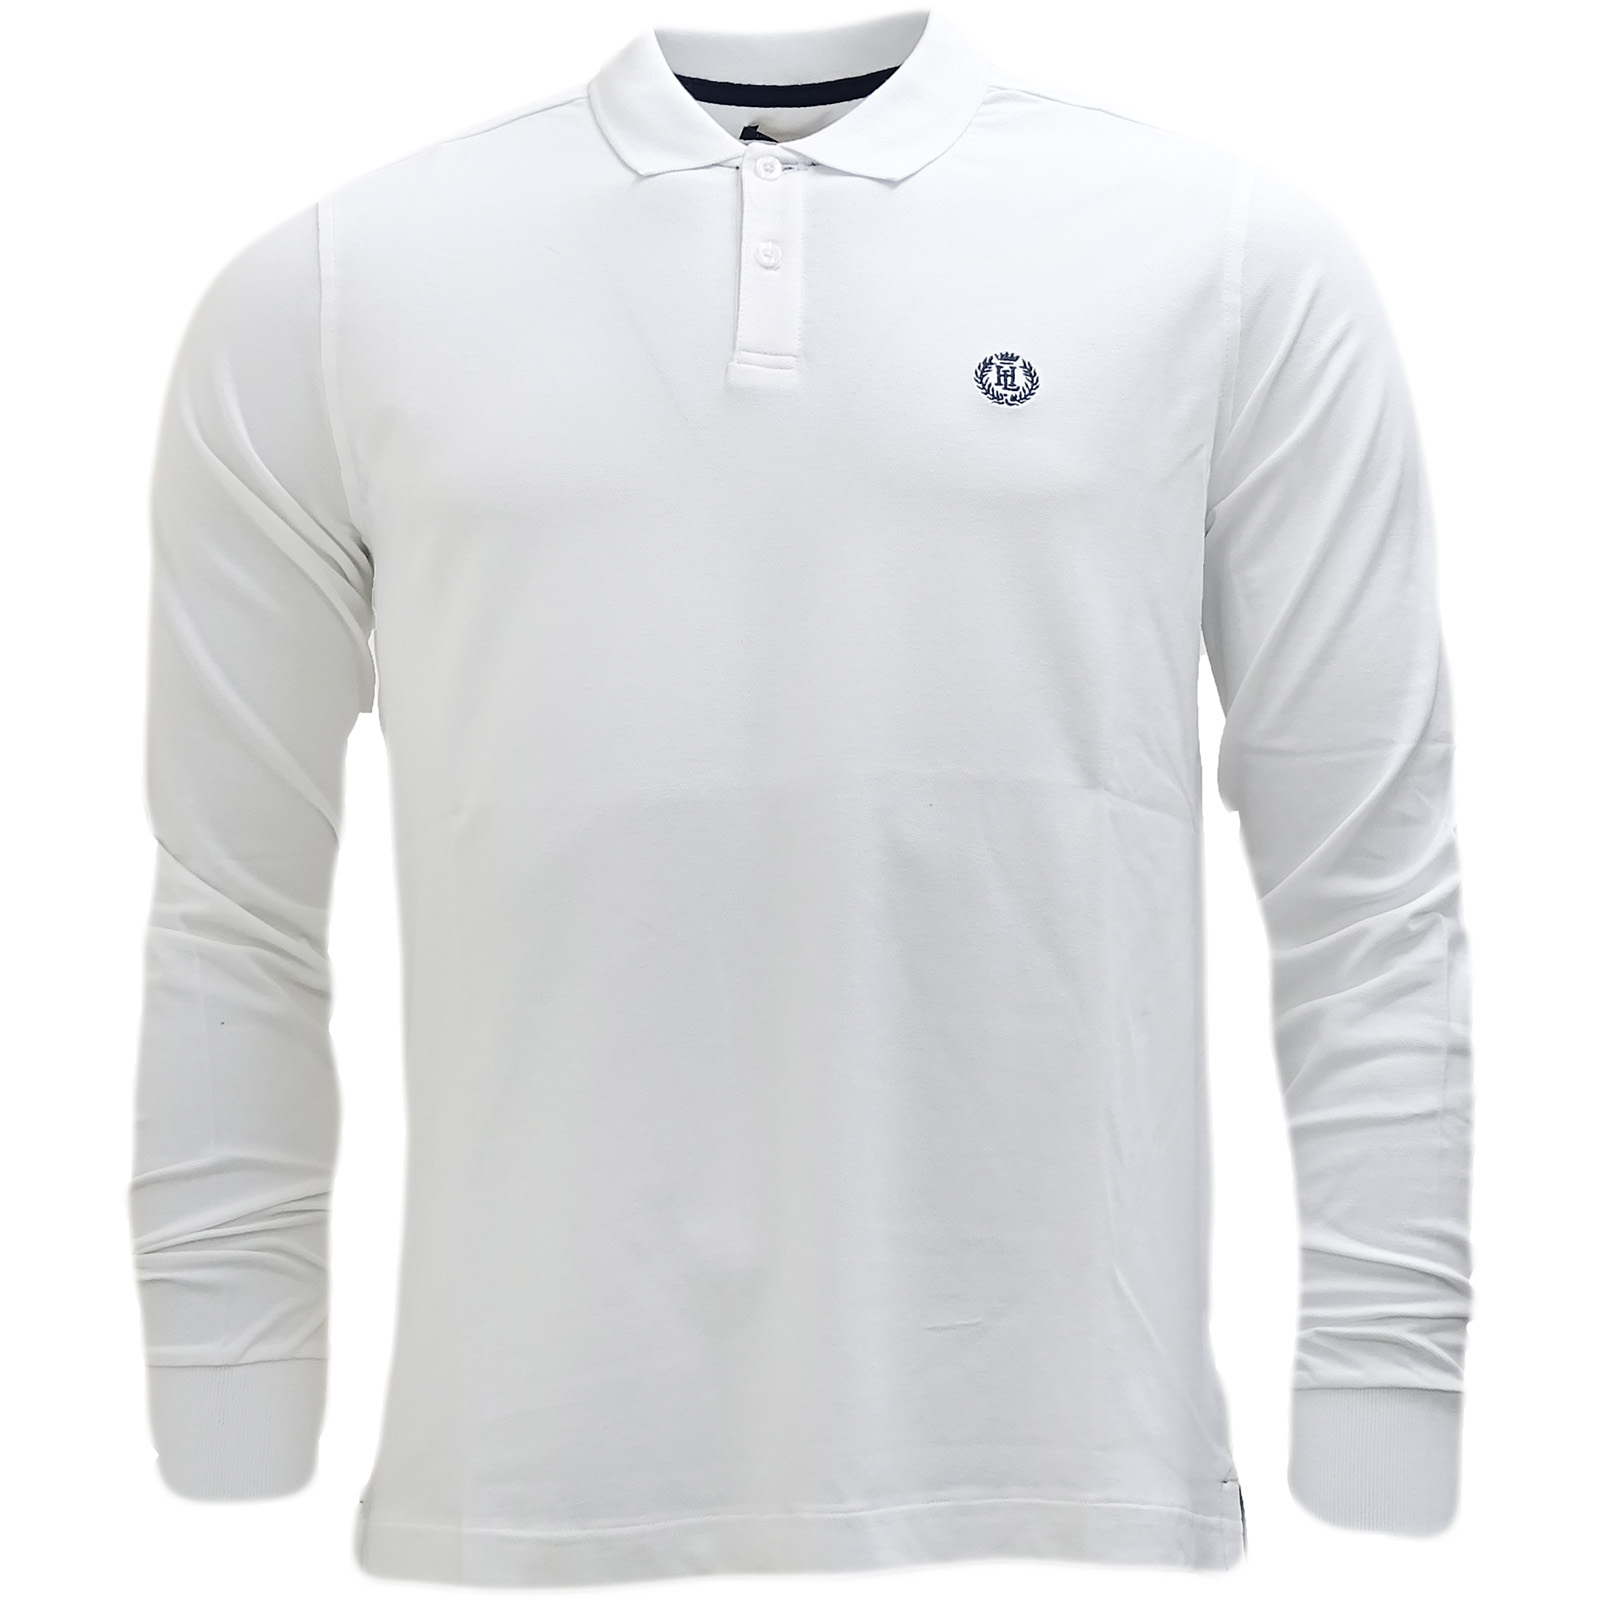 Henri-Lloyd-musburry-Long-Sleeve-Polo-Shirt